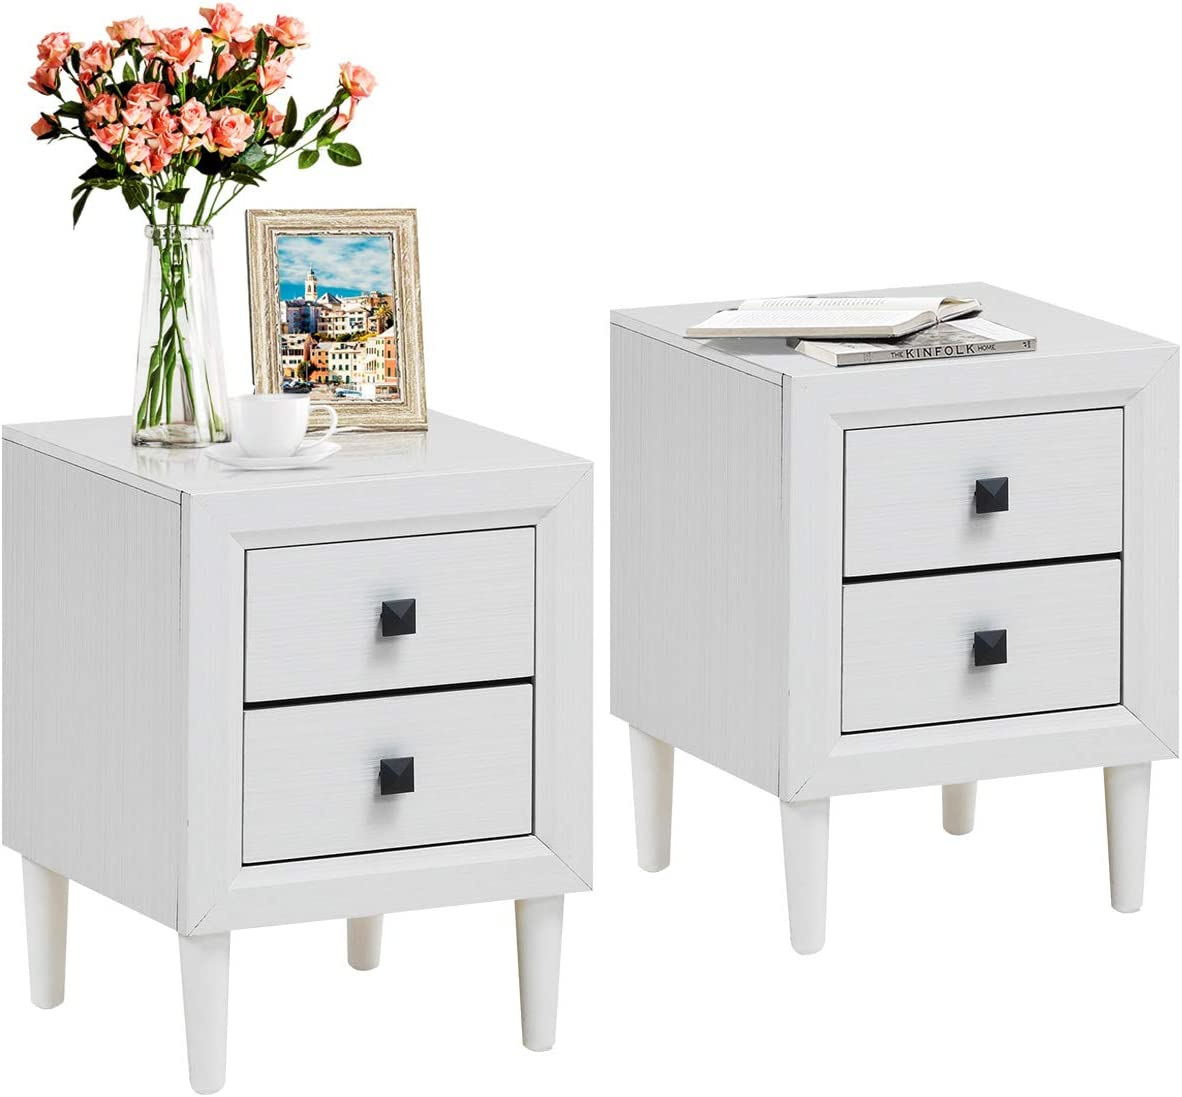 San Diego Mall Giantex Nightstand Wooden W Two and Drawers Handles Wate Storage Max 80% OFF